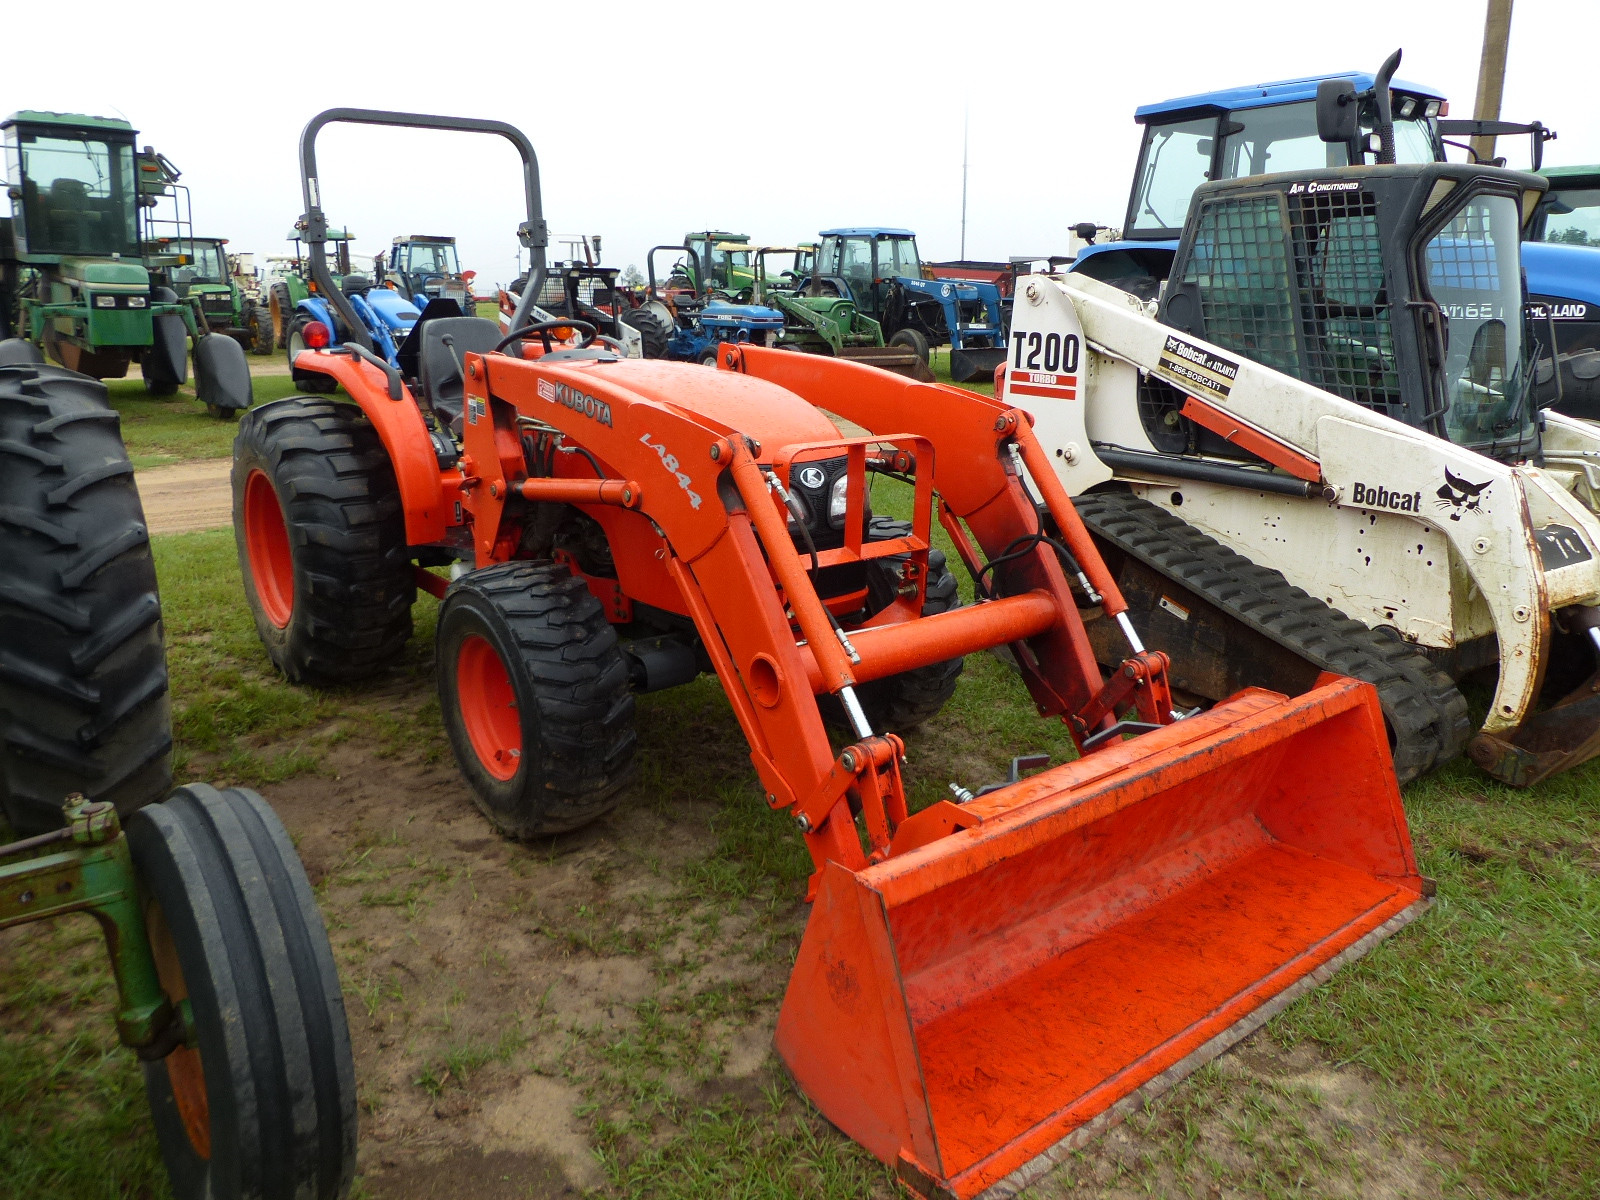 hight resolution of service operation manual agro equipment some of the available your include air conditioning this manual contains repair procedures sale kubota mx5100